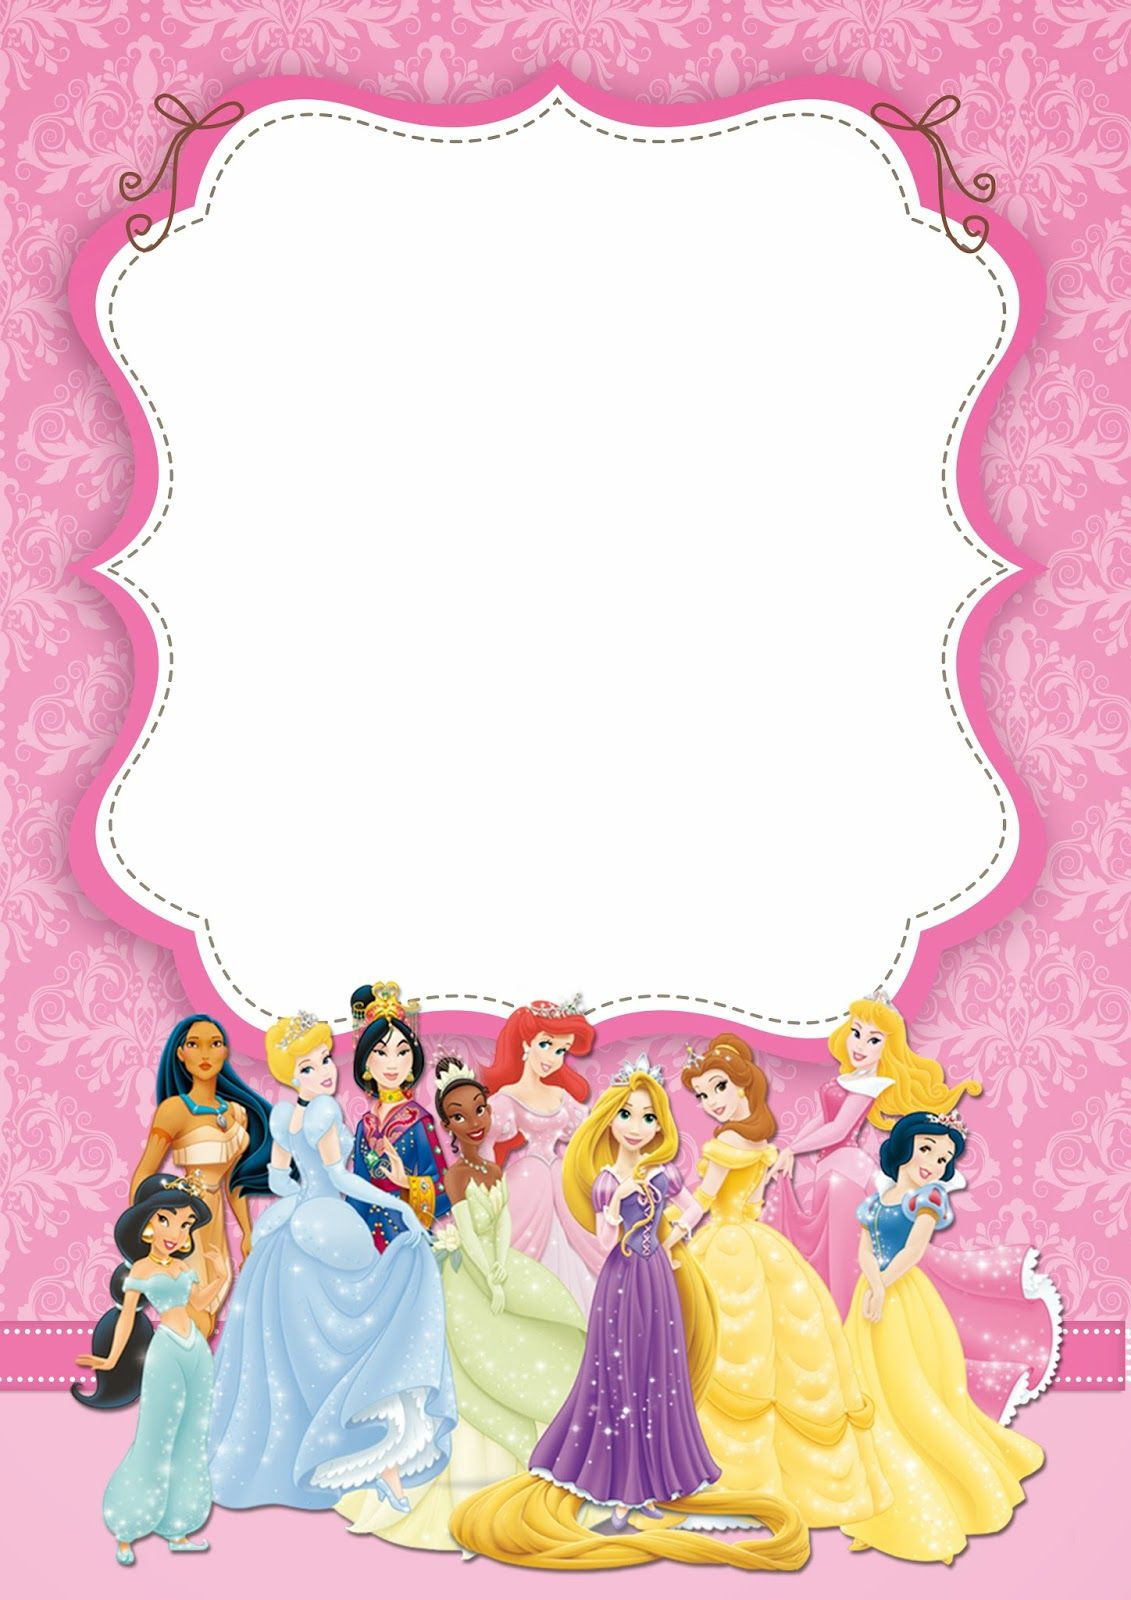 Disney Princess: Free Printable Party Invitations. | Princesse - Disney Princess Free Printable Invitations